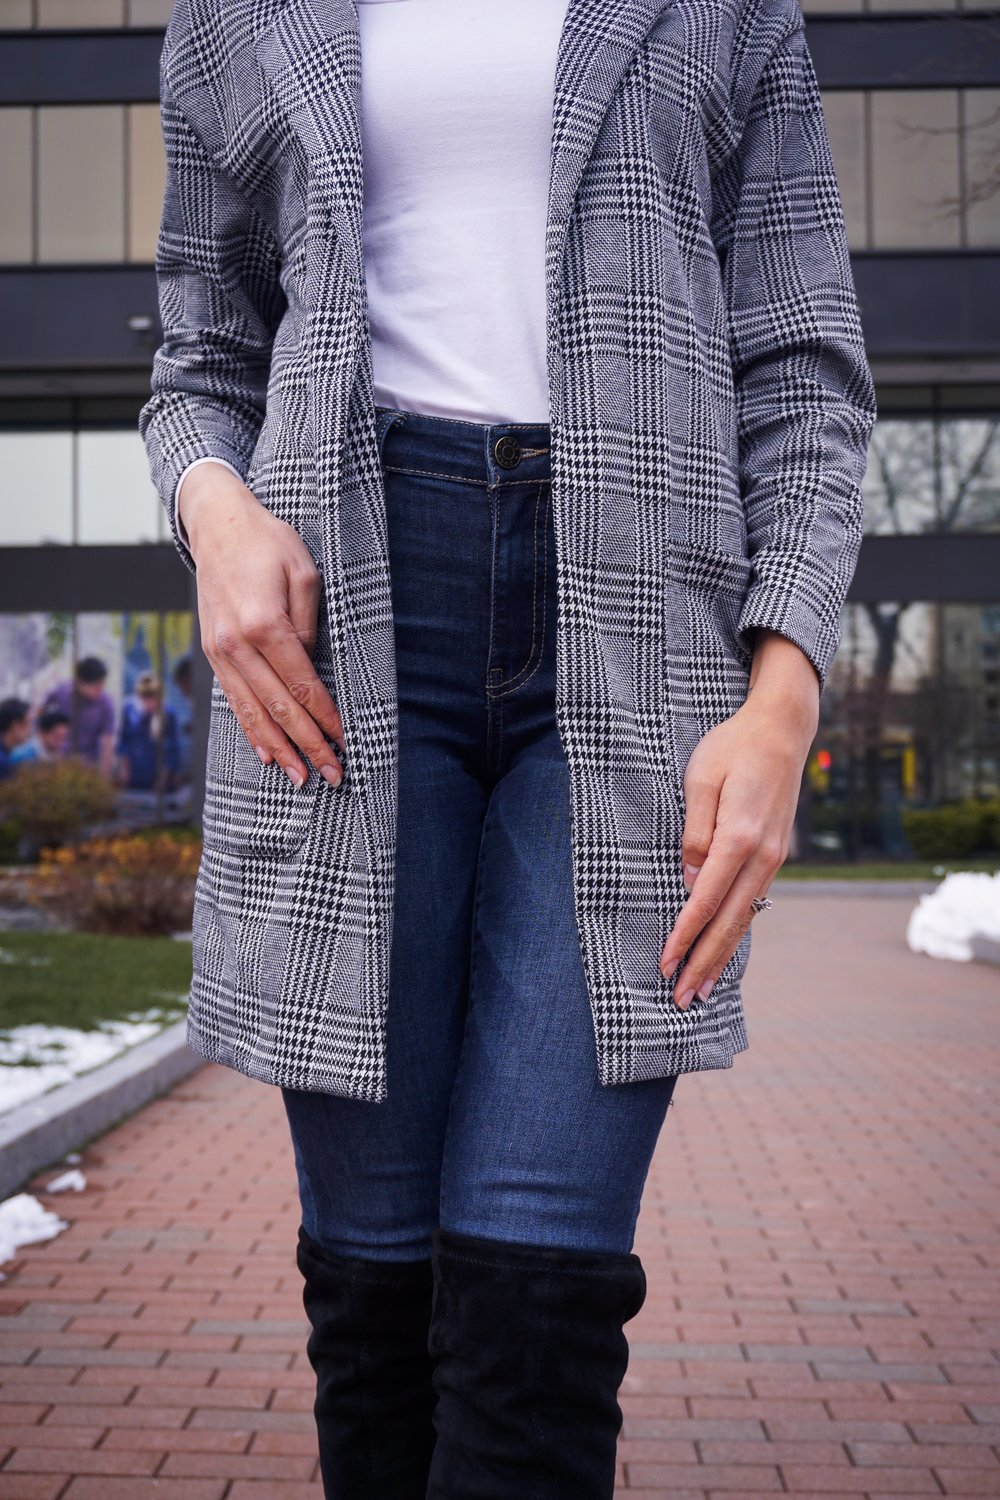 A close-up of a winter outfit: houndstooth blazer, white turtleneck, denim jeans, and black over-the-knees boots.